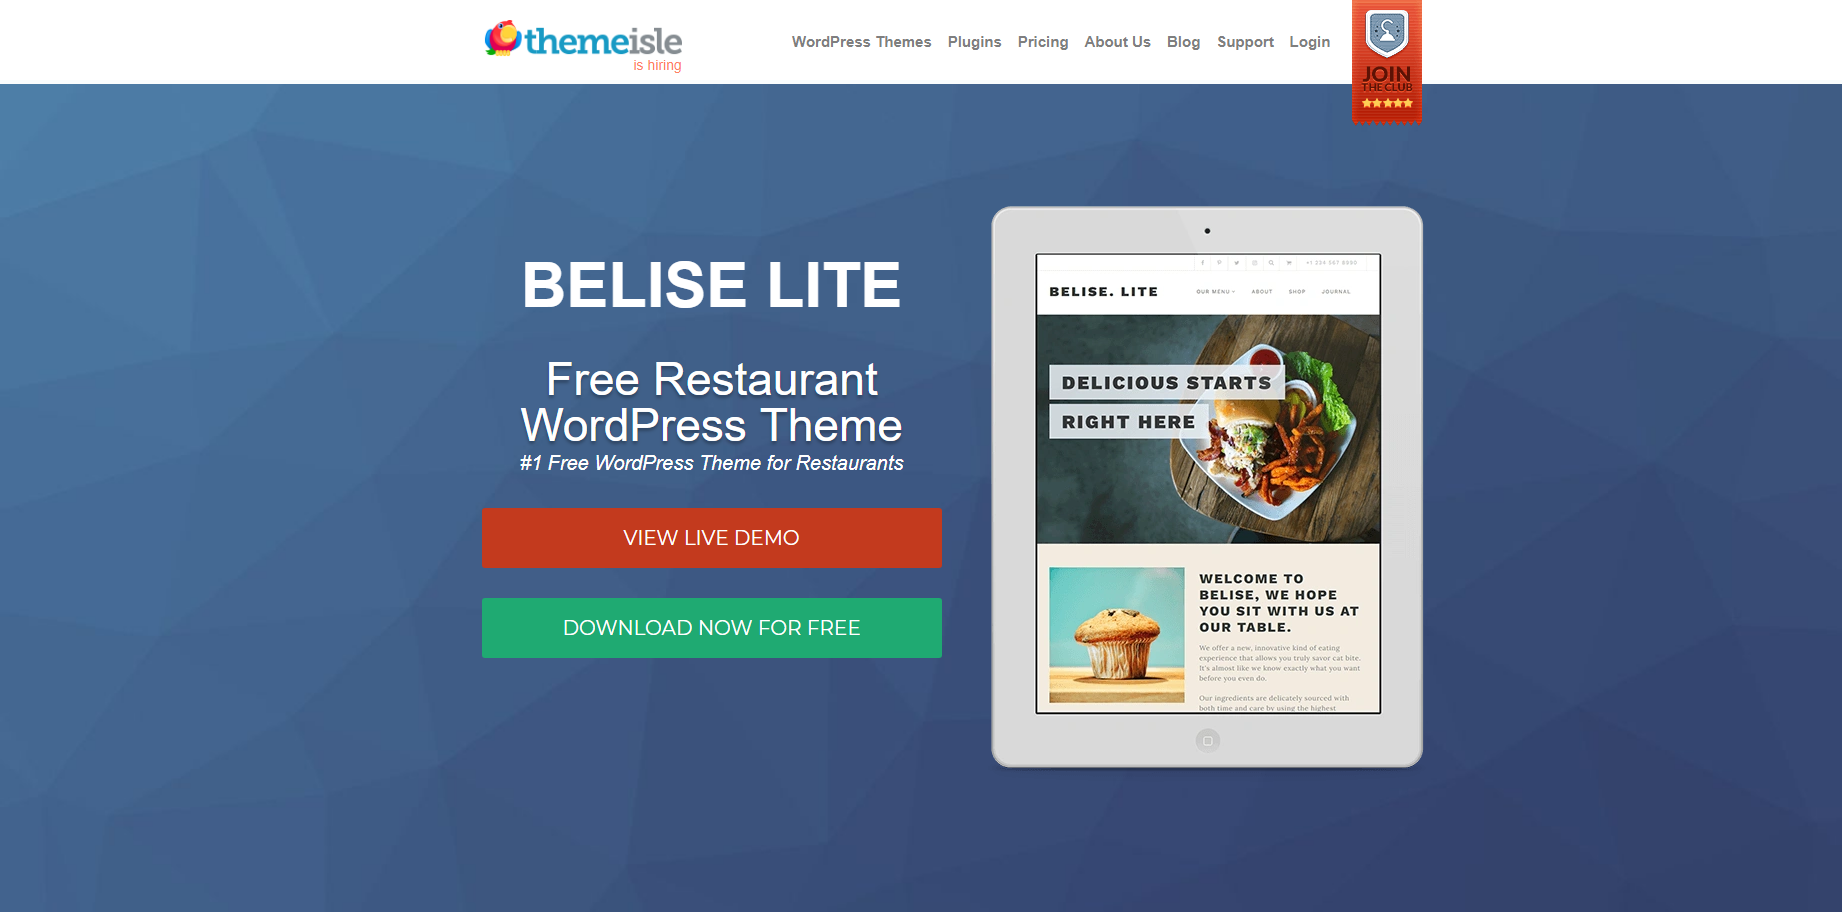 RocketTheme | 15 Places To Find The Best Free WordPress Themes